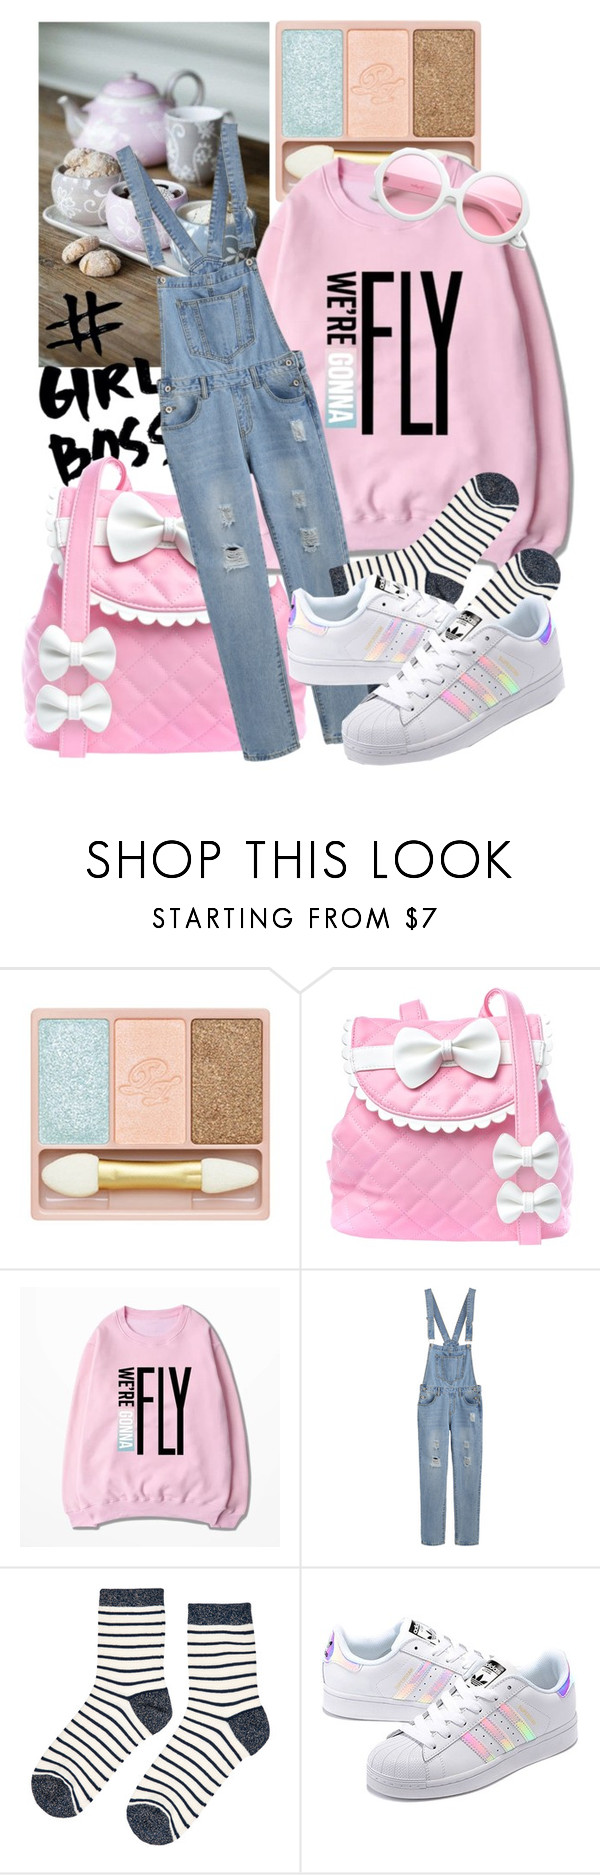 """""""#girlboss"""" by rubystripes ❤ liked on Polyvore featuring Paul & Joe, Sugarbaby, Accessorize, adidas Originals and ZeroUV"""